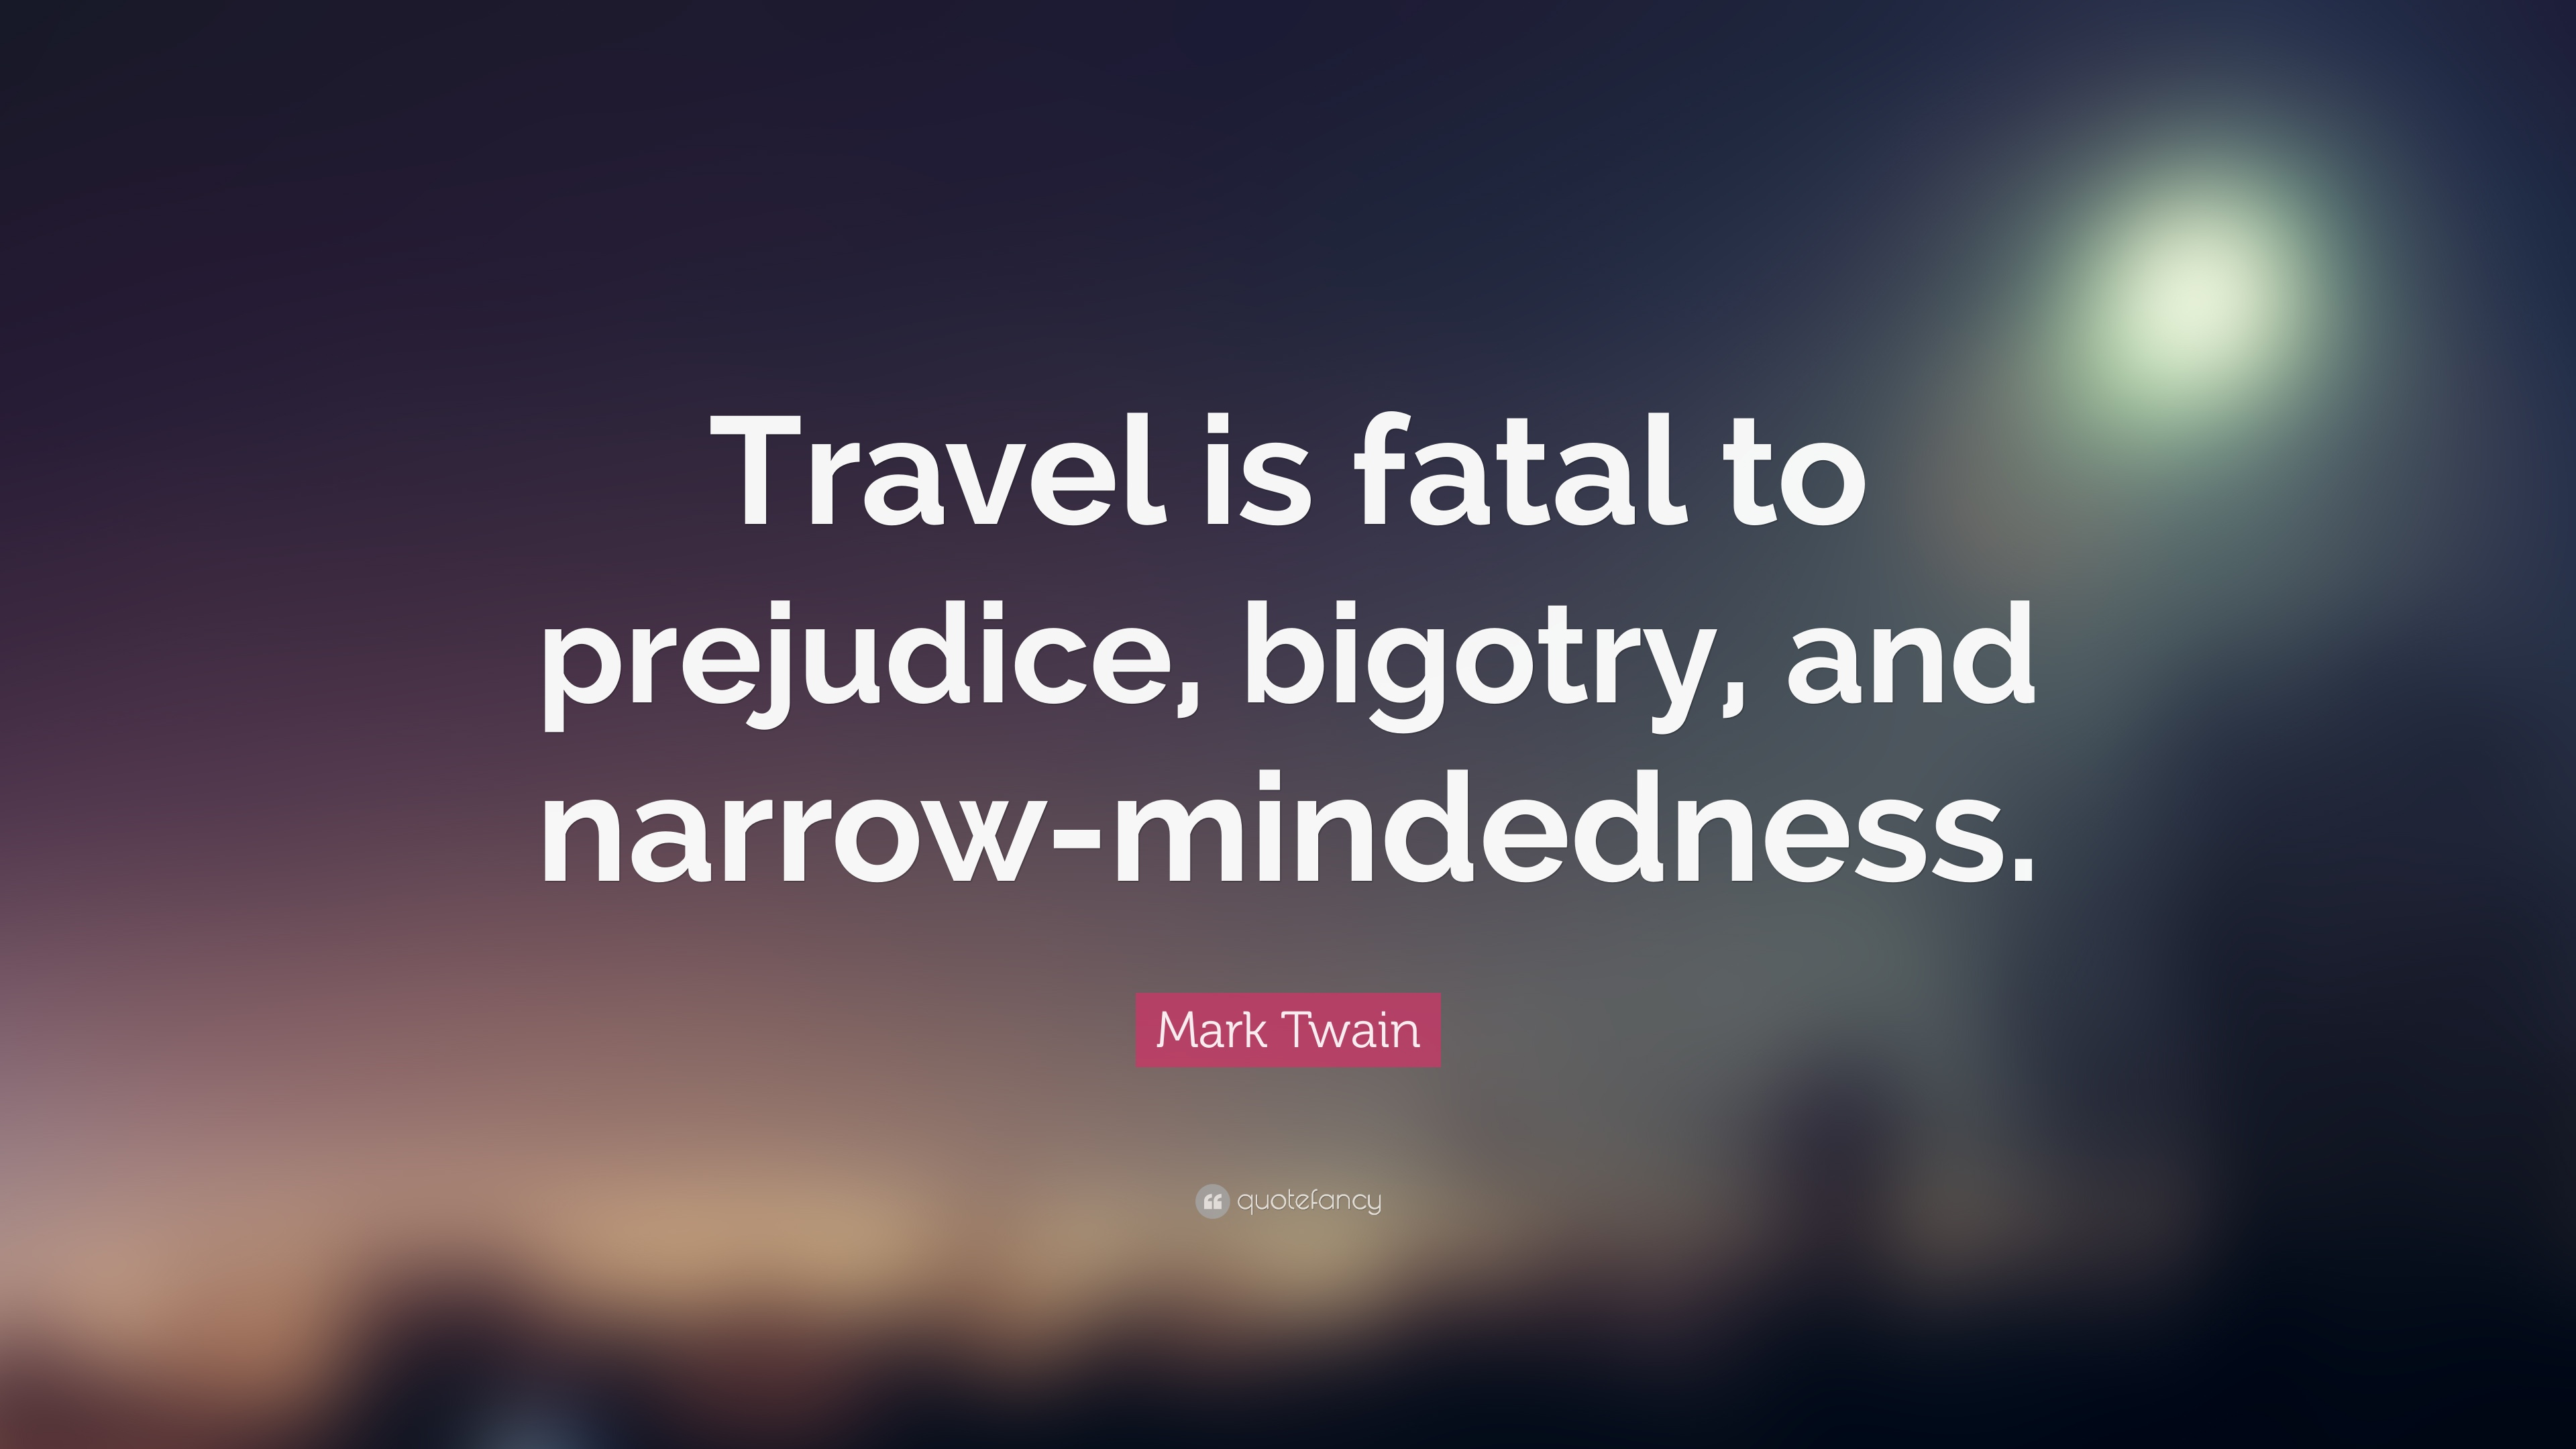 travel fatal prejudice